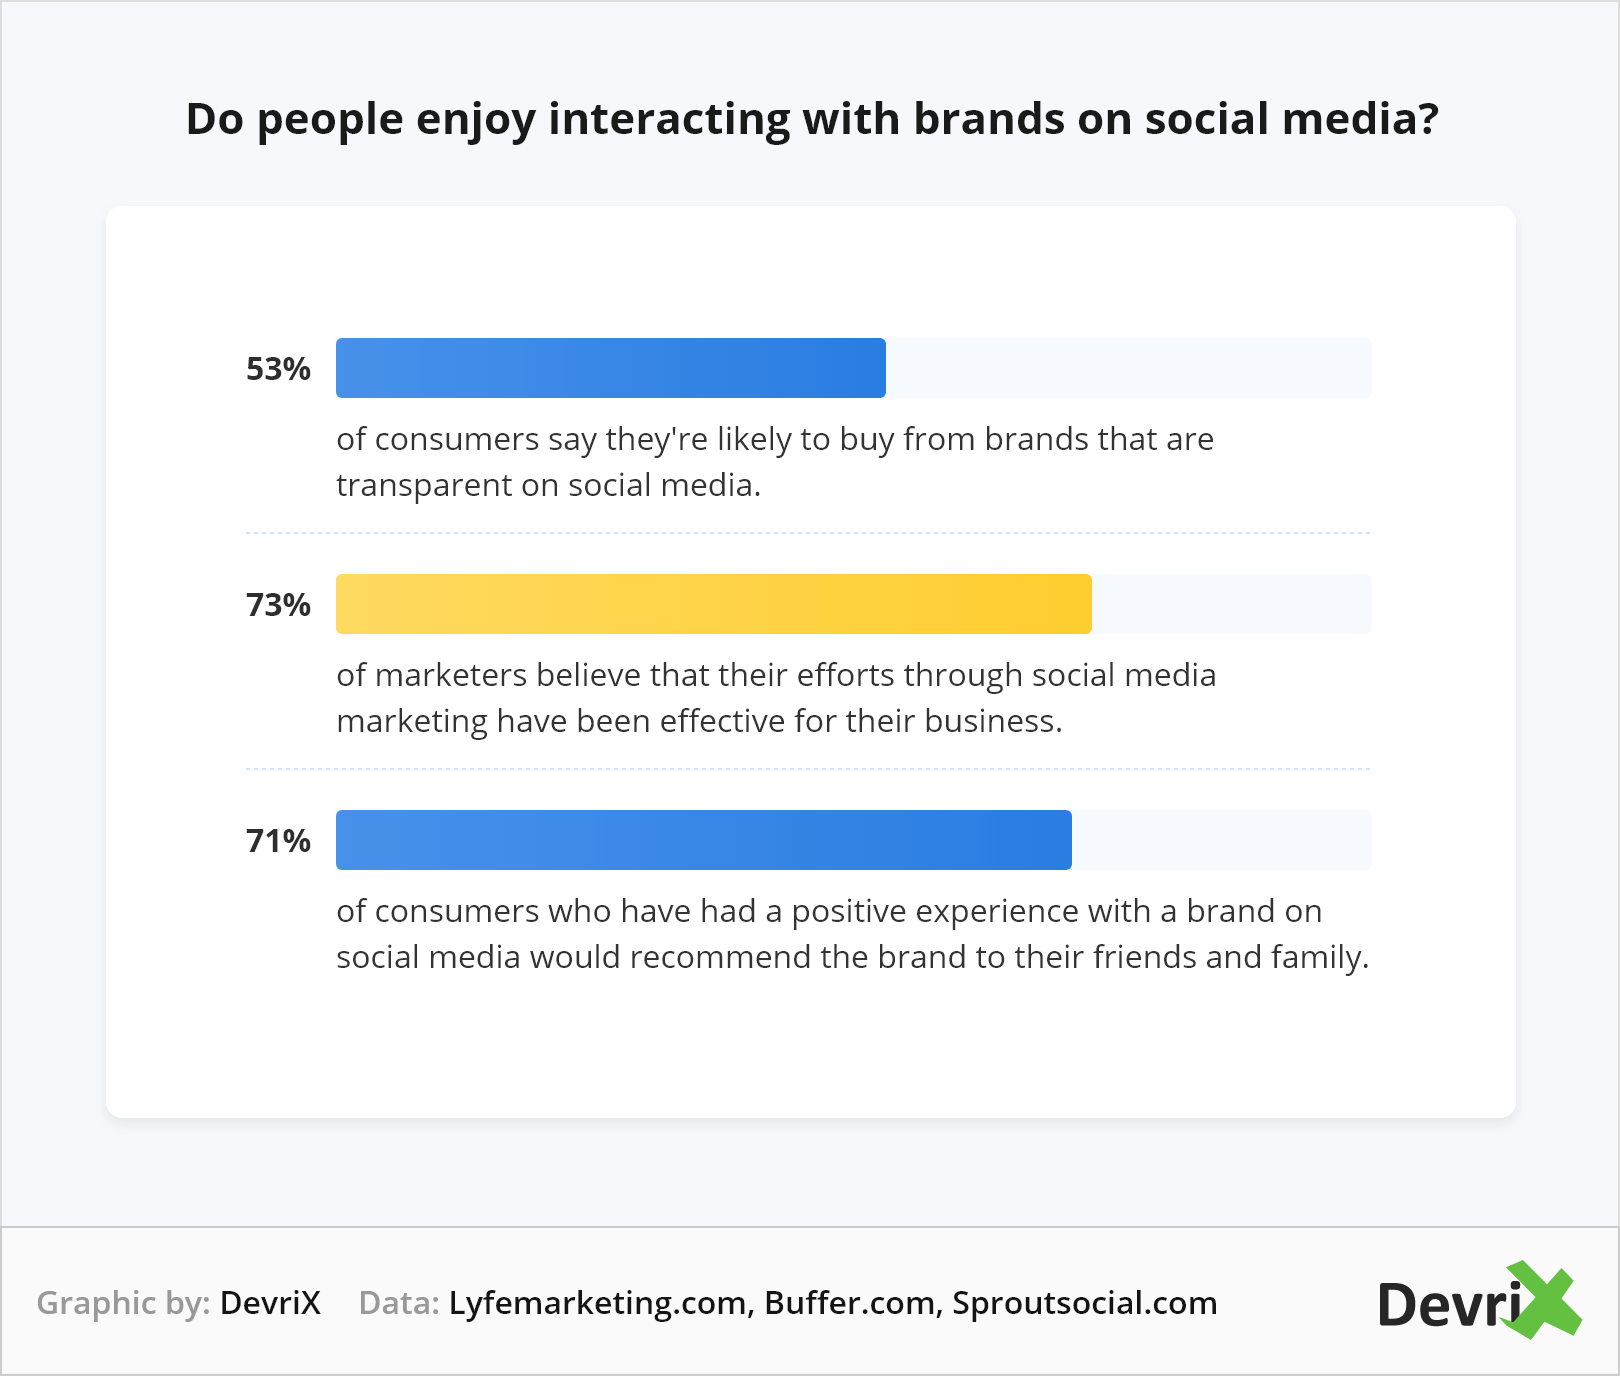 do people enjoy interacting with brands on social media